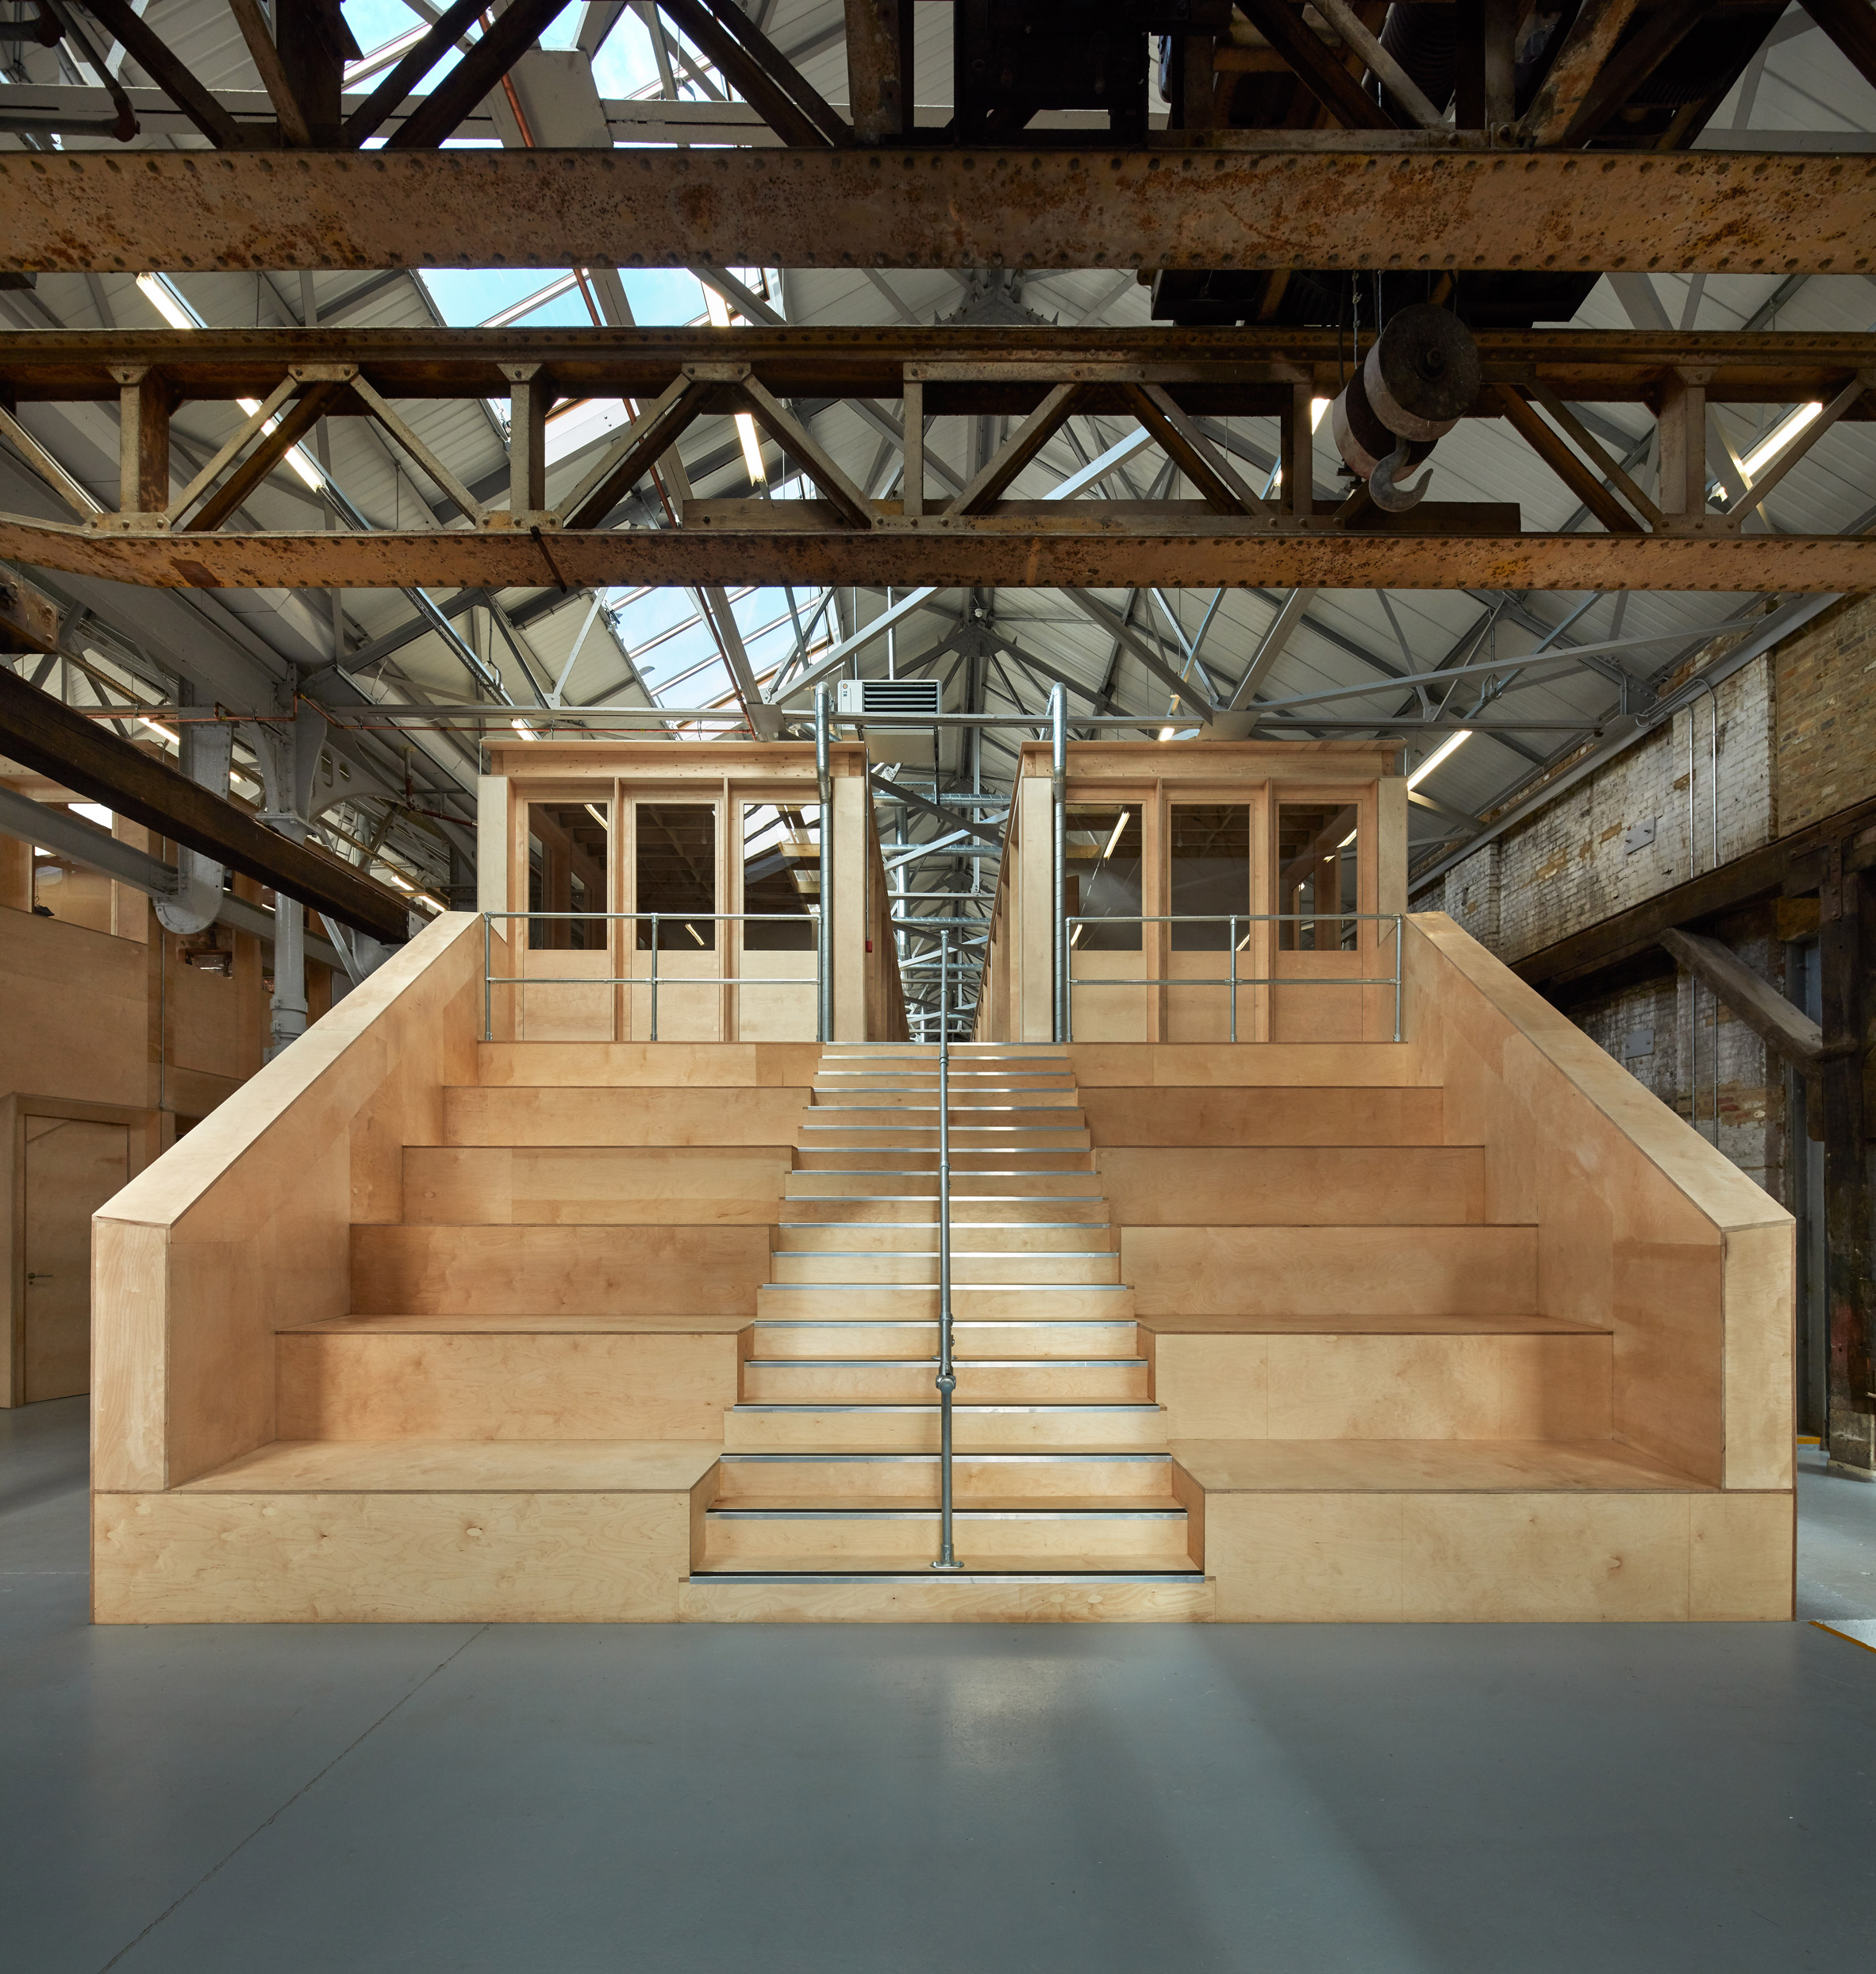 Emrys Architects uses timber inserts to convert east London ironworks into artists' studios